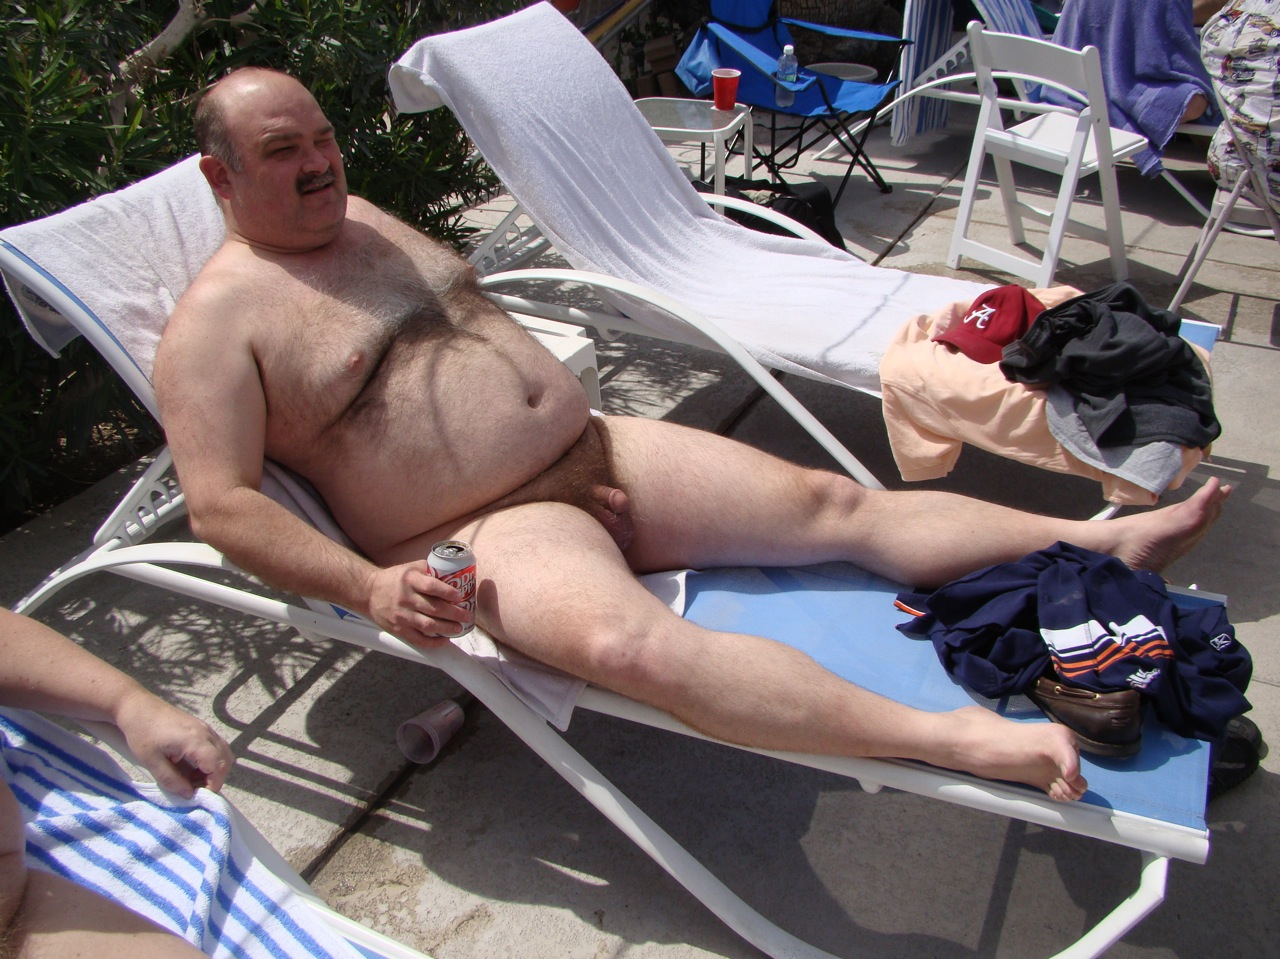 fat gay bears - gay daddy sites - gay old bears